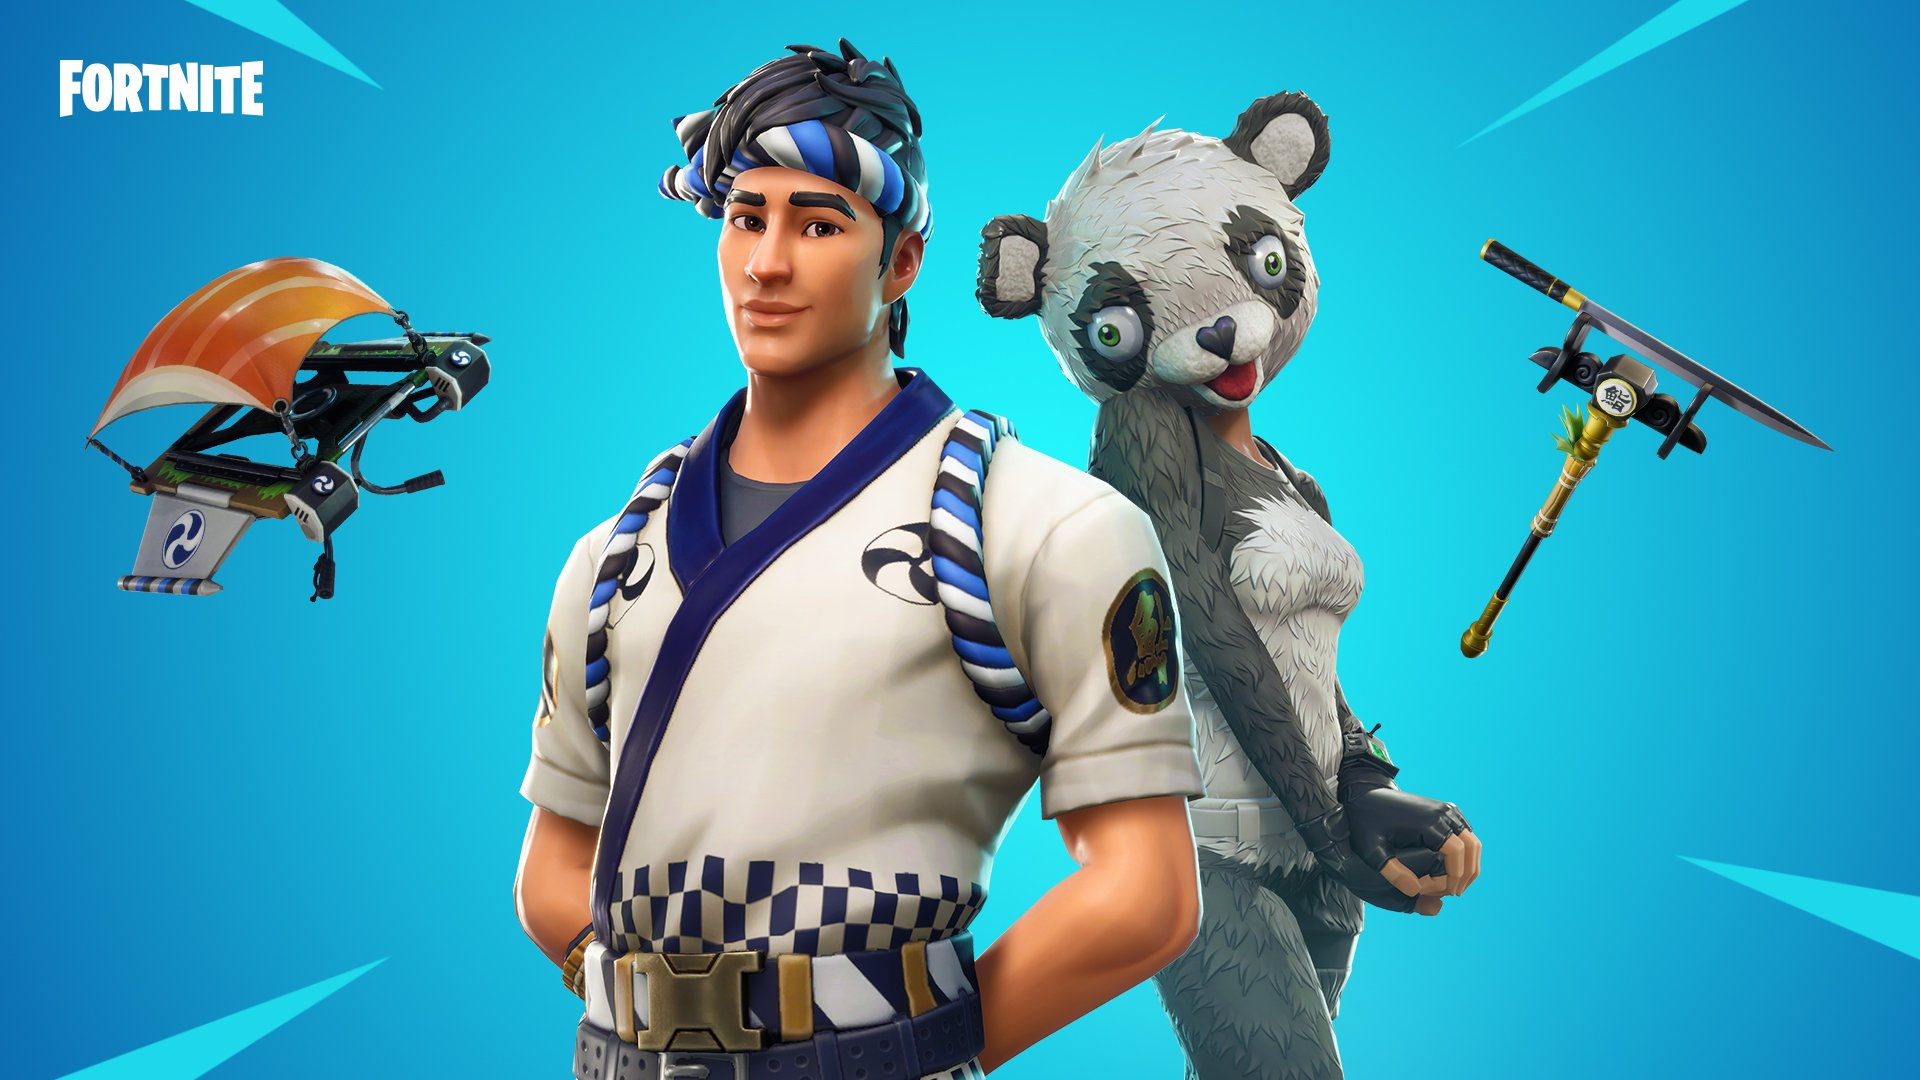 if you like to download this wallpaper please use this - fortnite chef skin